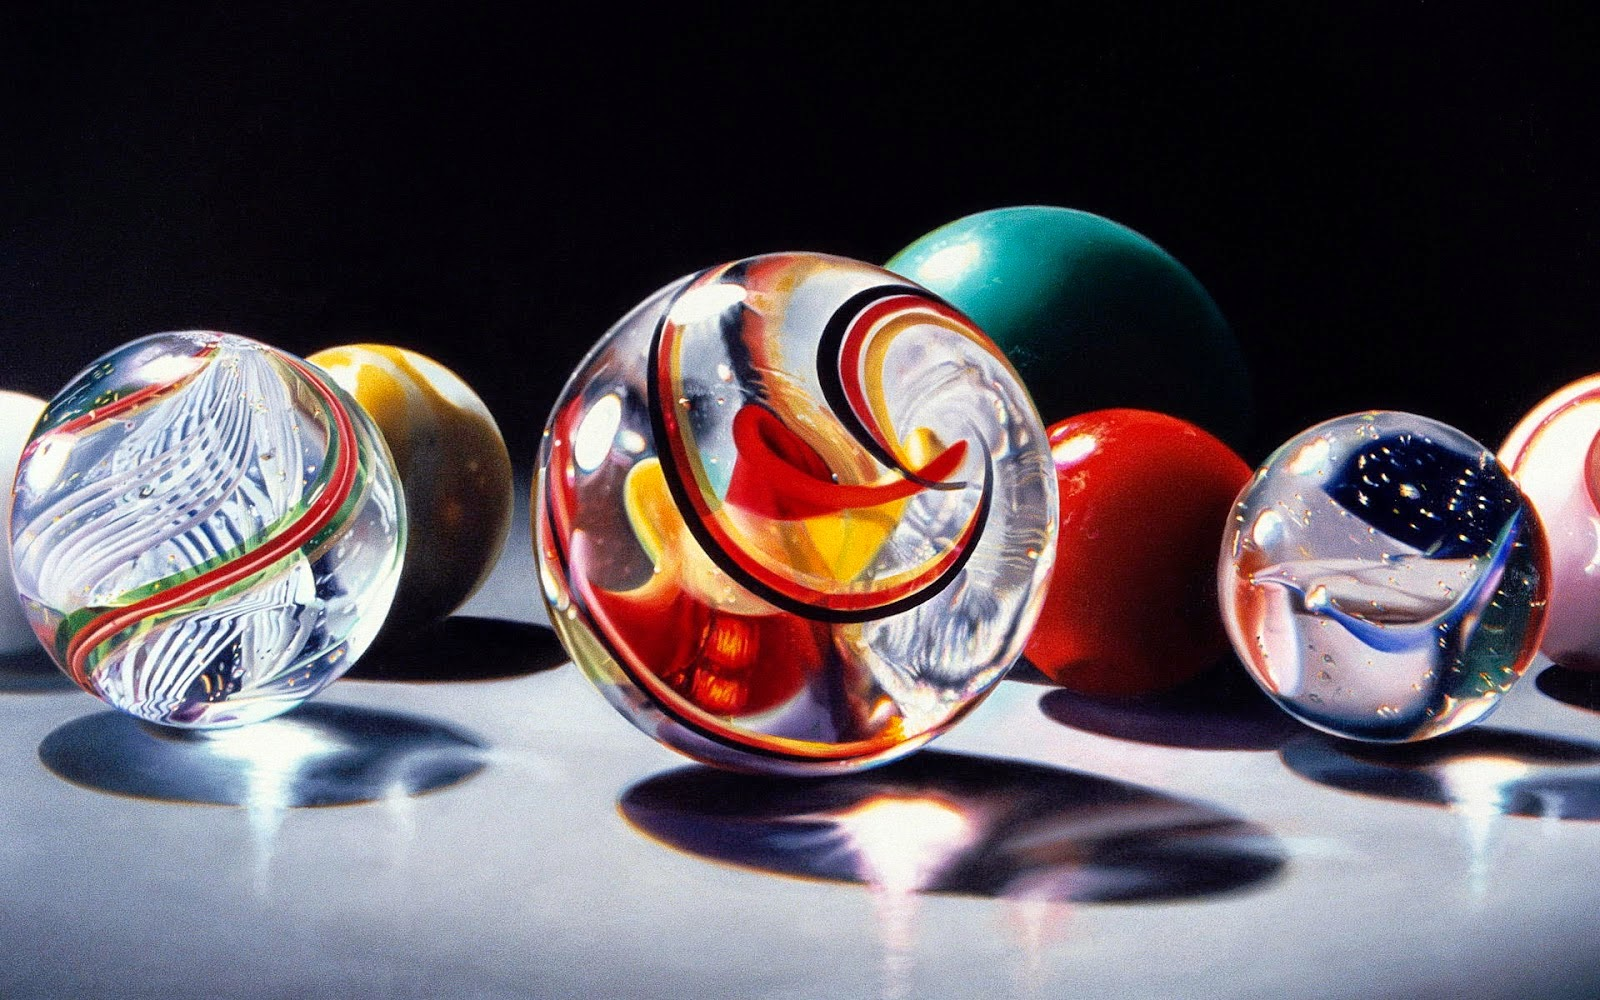 11-Charles-Bell-Hyper-Realistic-Paintings-www-designstack-co